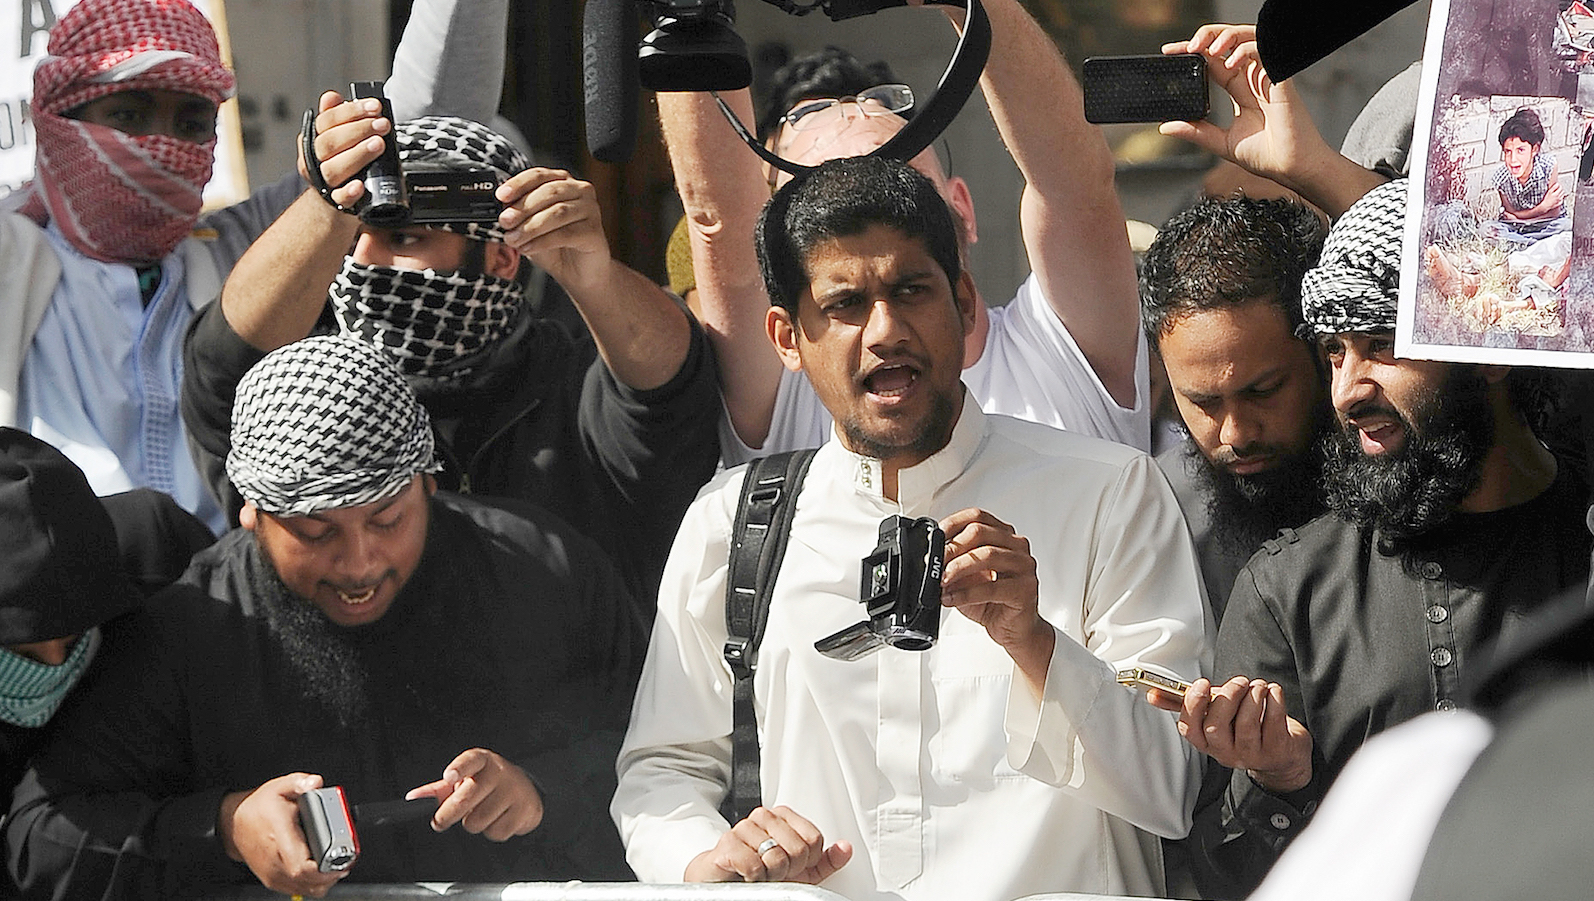 A file picture shows a man identified by local media as Siddharta Dhar (C in white) as he takes part in a demonstration outside the U.S. embassy in central London, September 11, 2011. Dhar is widely identified by local media as the masked figure with a British accent in the latest video distributed by ISIS which shows the execution of 5 men.     TPX IMAGES OF THE DAY - RTX213O1